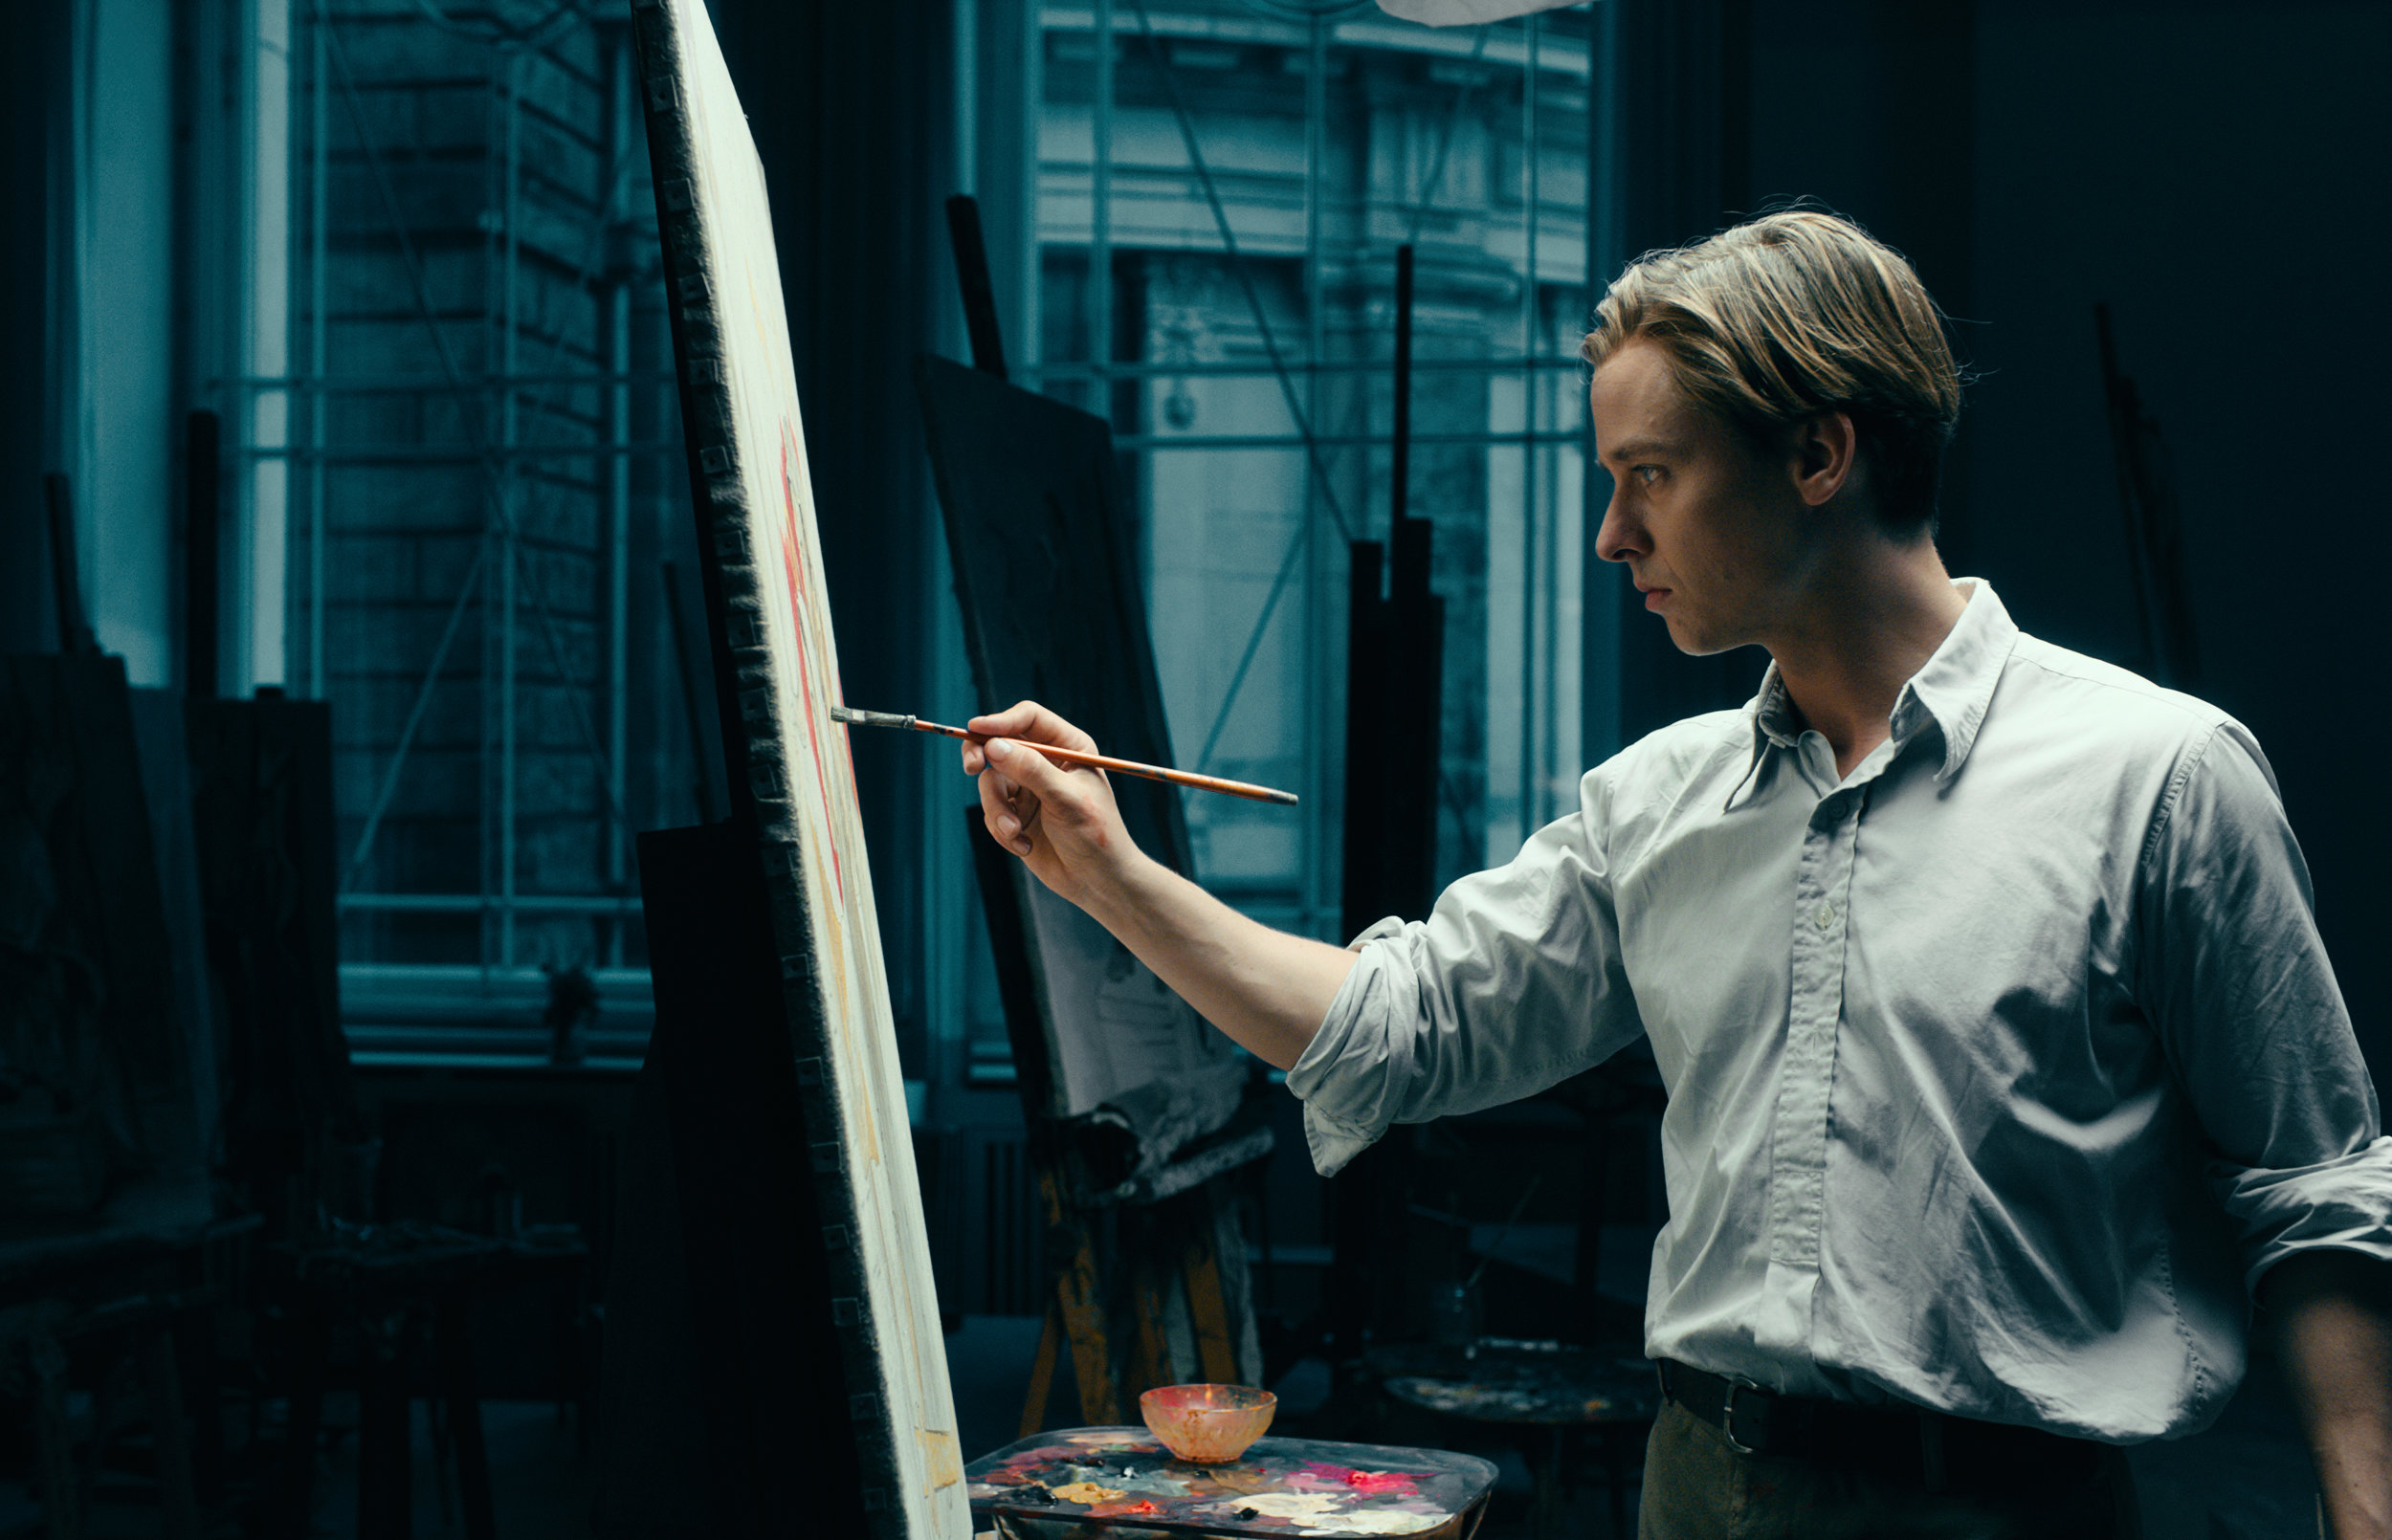 Kurt (Tom Schilling) seeks to exorcise demons of Naziism and Communism through art in Never Look Away